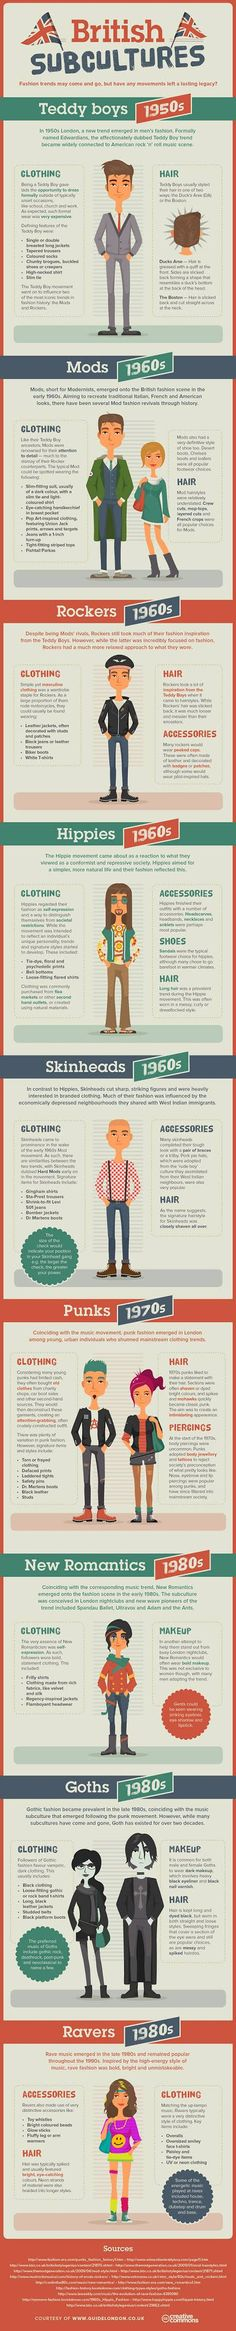 We feature mods, rockers and hippies in this infographic by Guide London who Explores History of British Fashion.